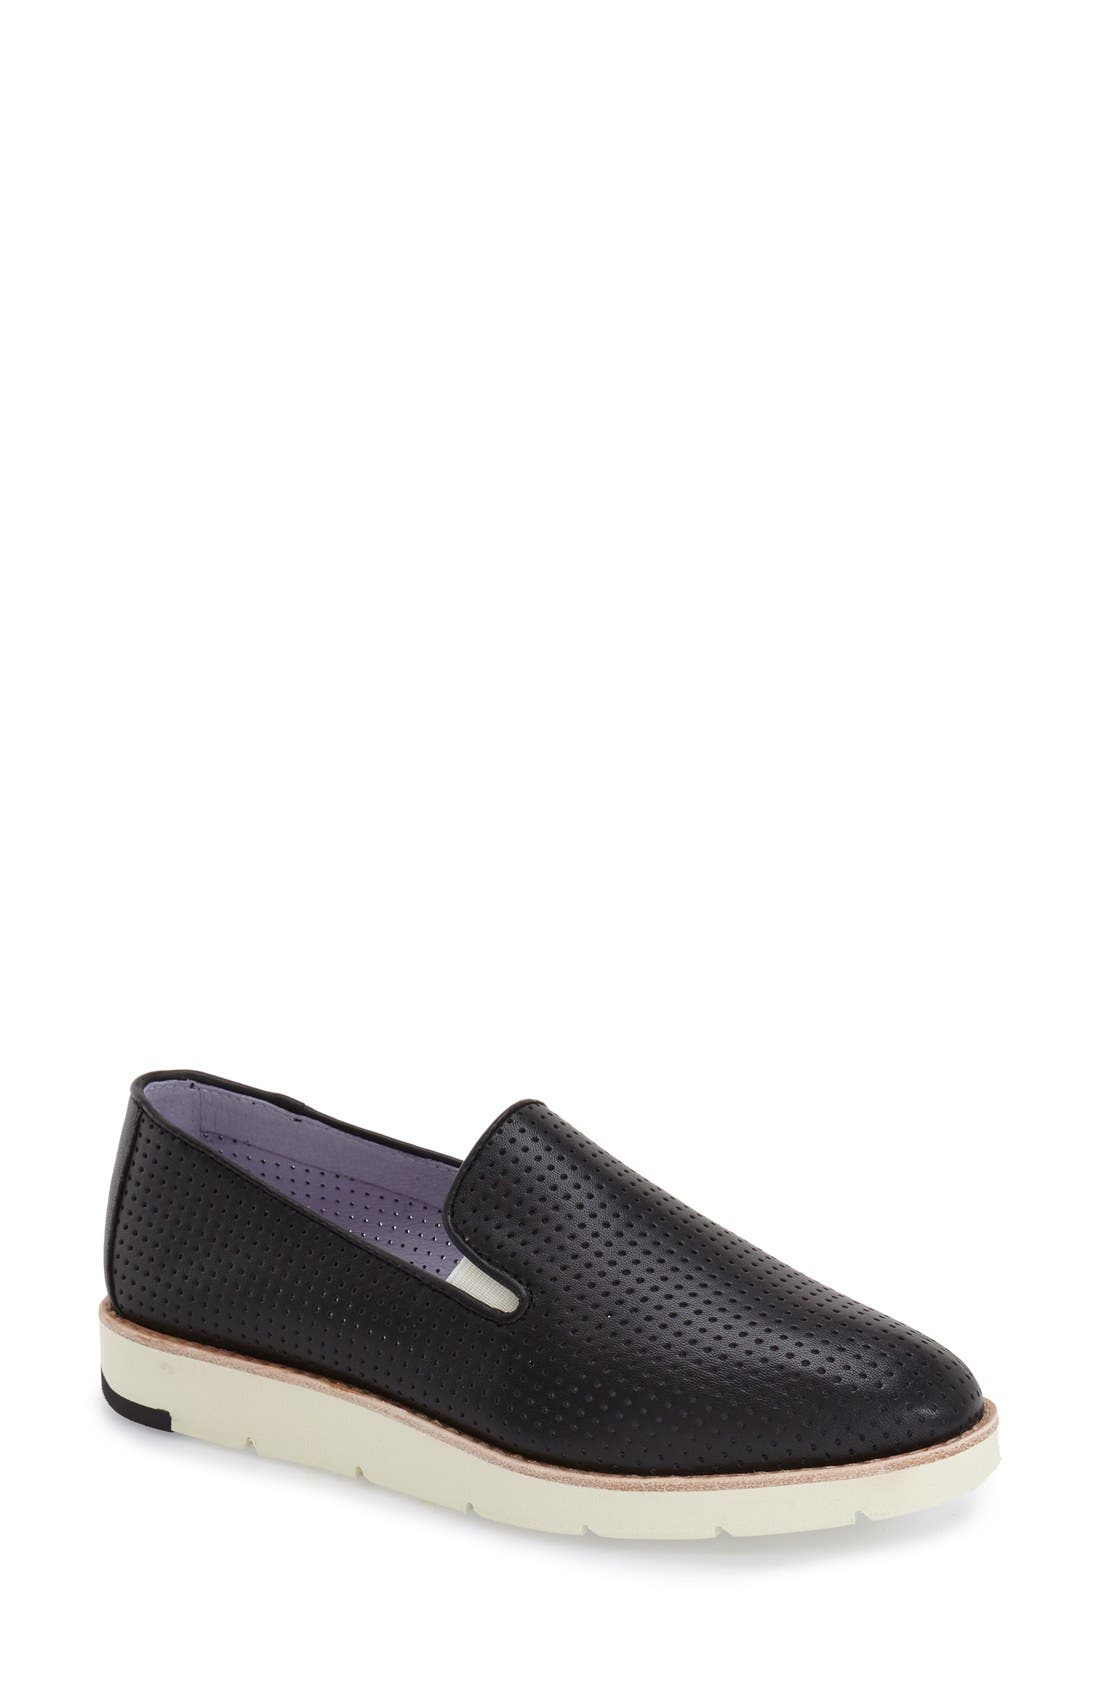 'Paulette' Slip-On Sneaker,                         Main,                         color, BLACK